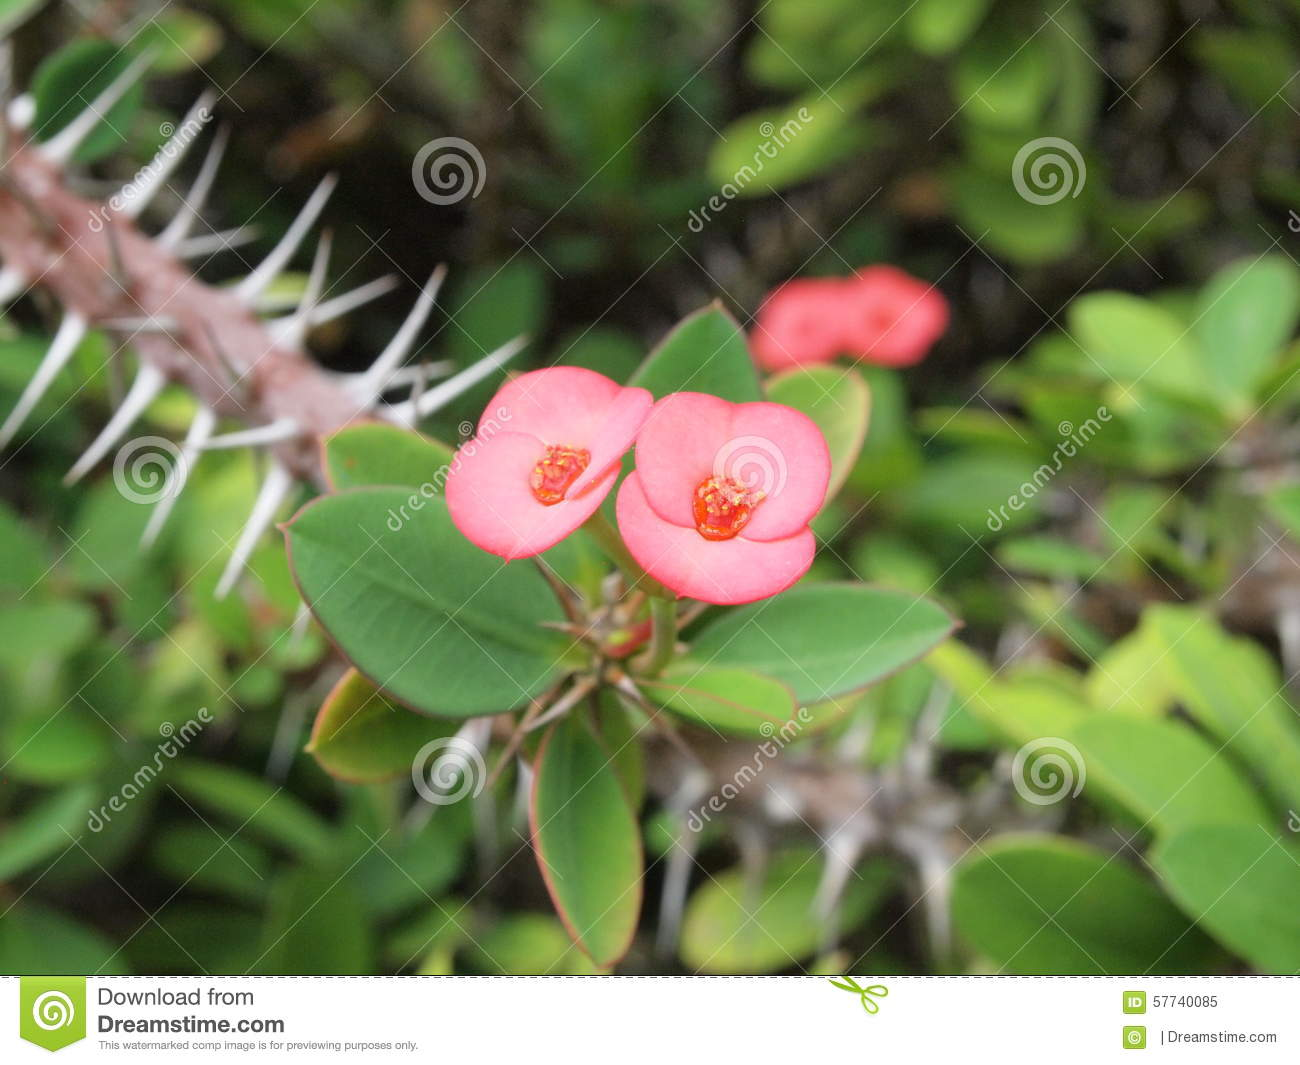 Pink flower crown of thorns christ thorn stock image image of pink flower crown of thorns christ thorn mightylinksfo